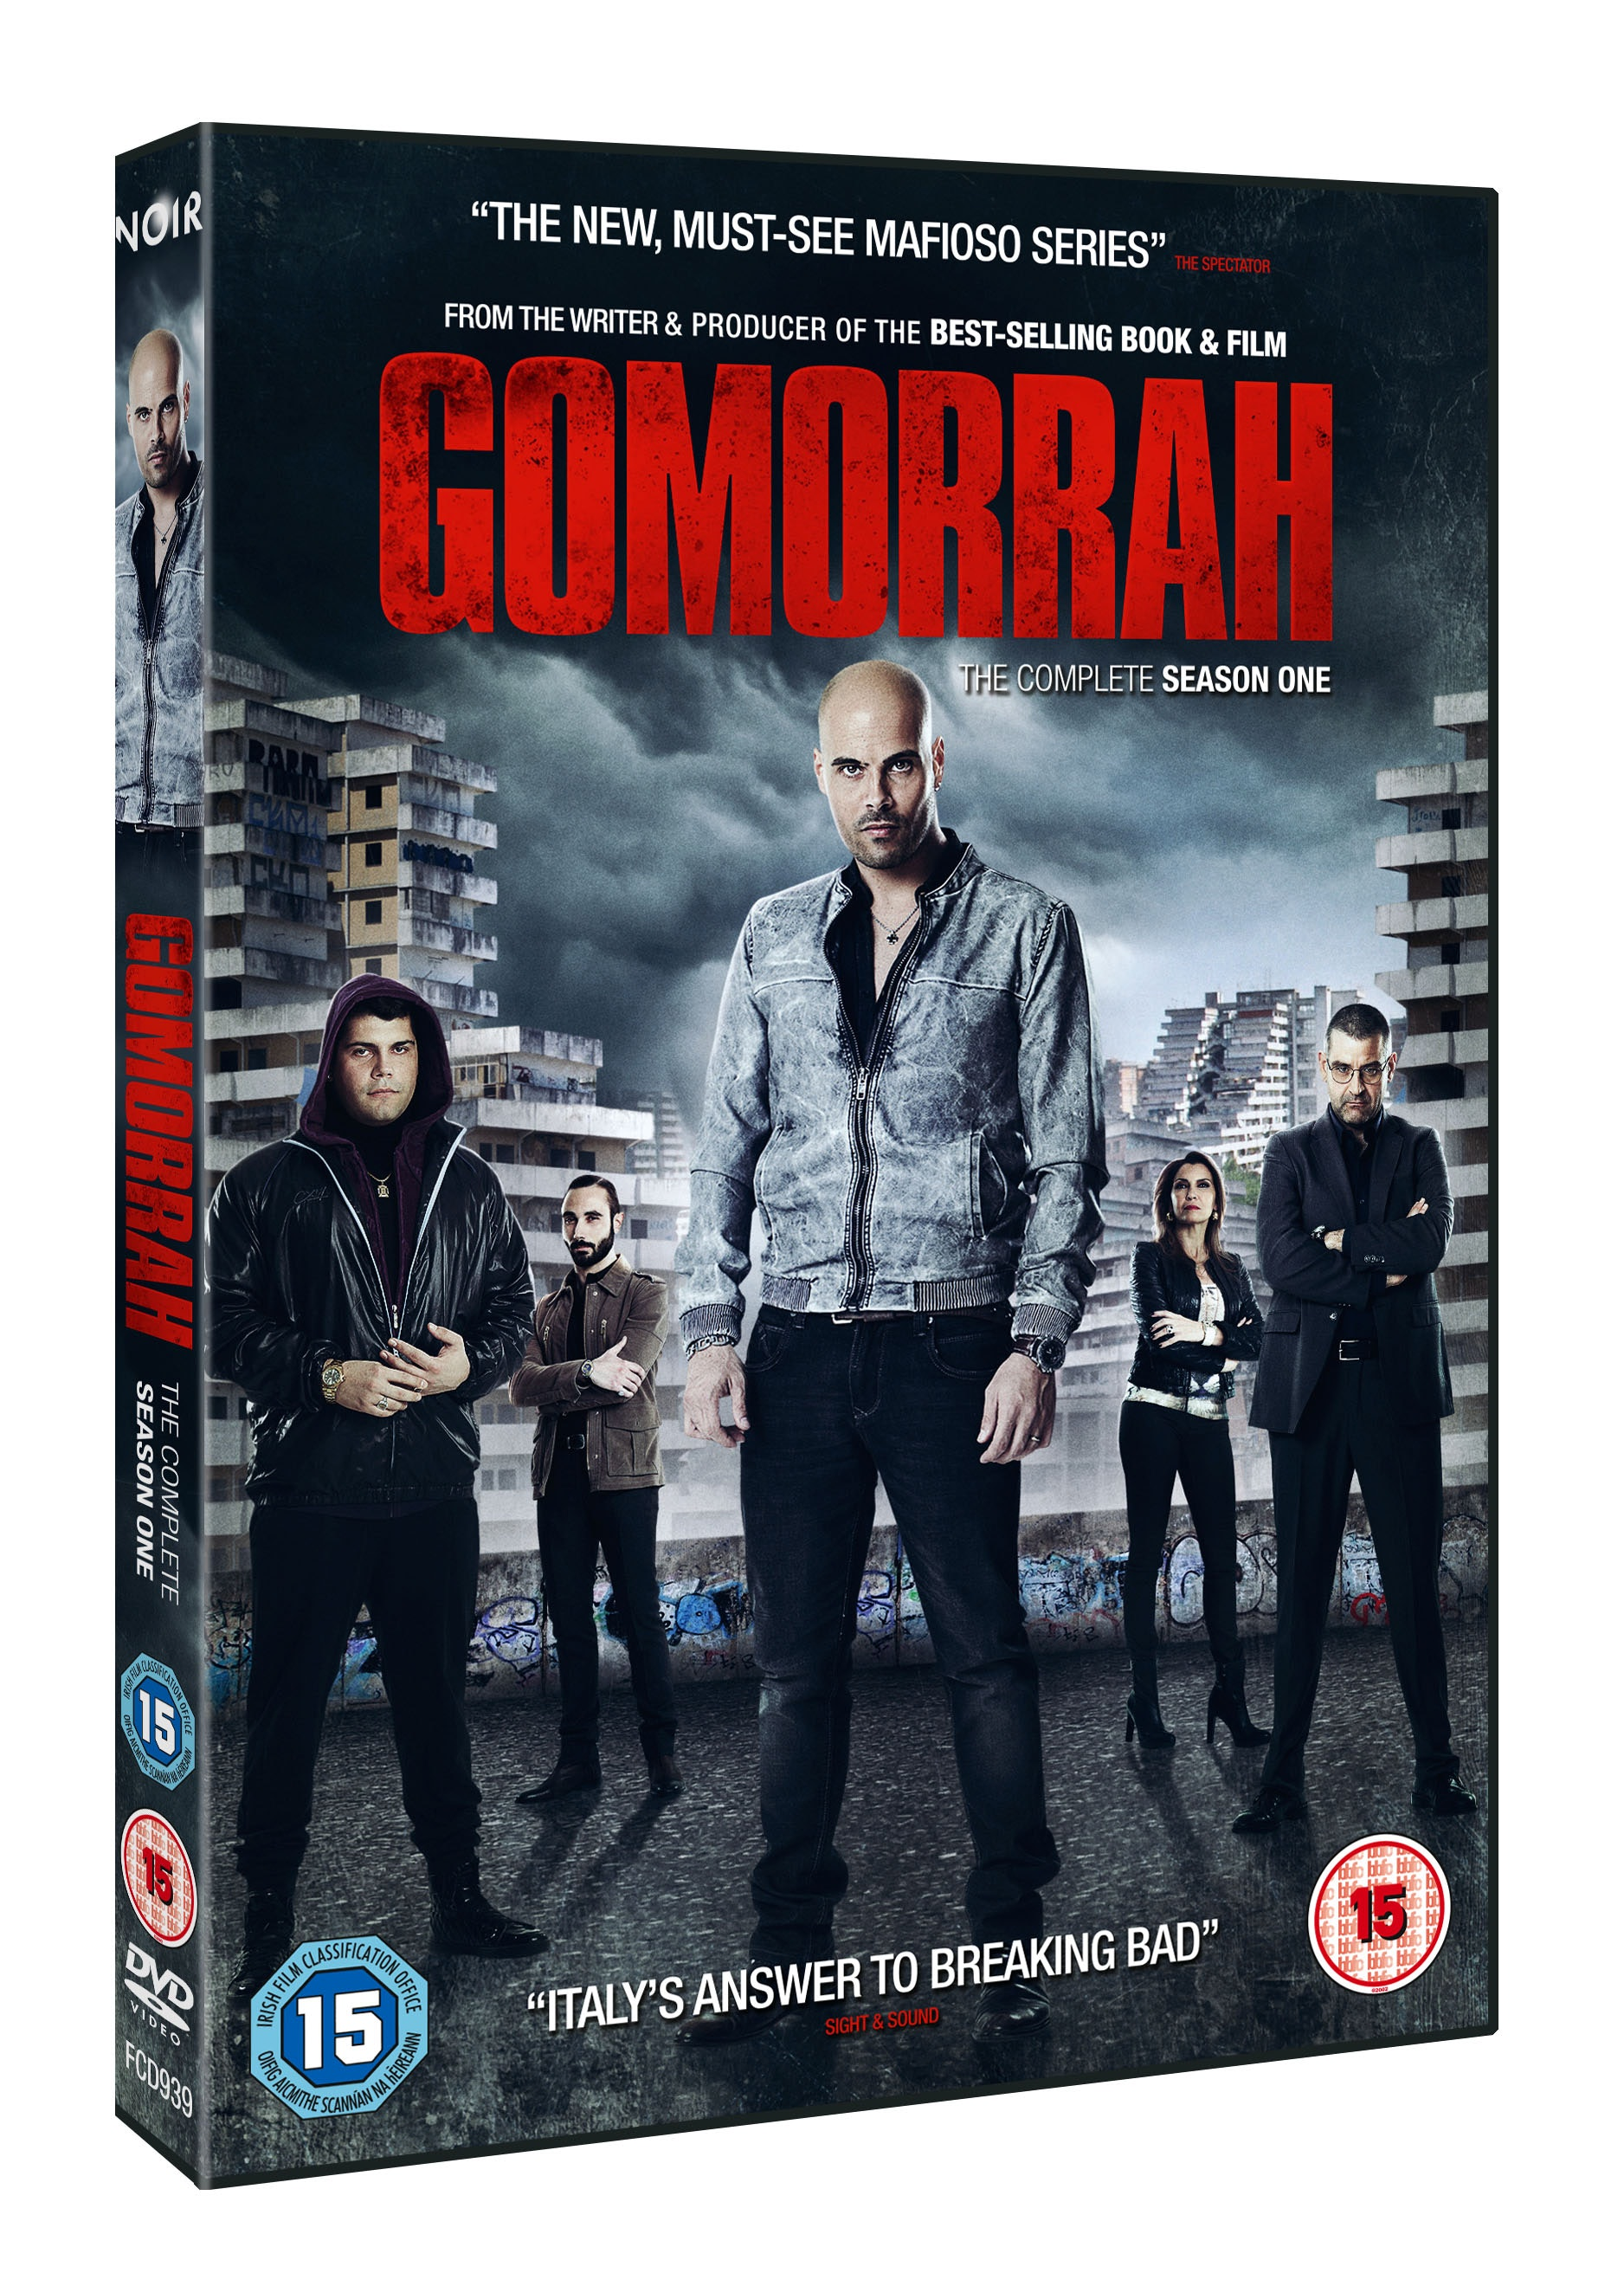 Gomorrah sweepstakes